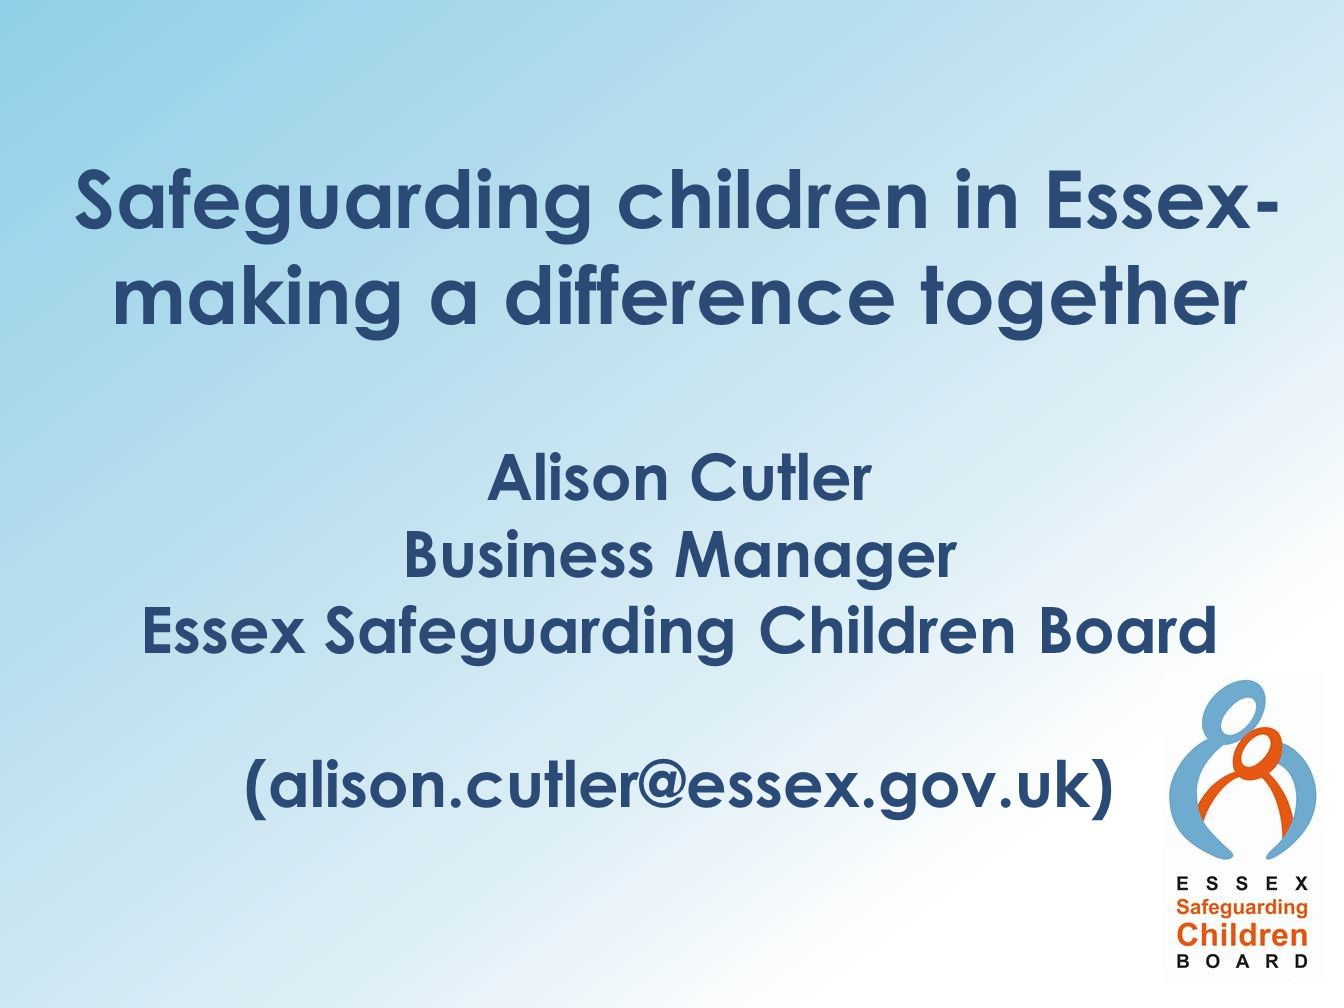 Safeguarding children in Essex- making a difference together